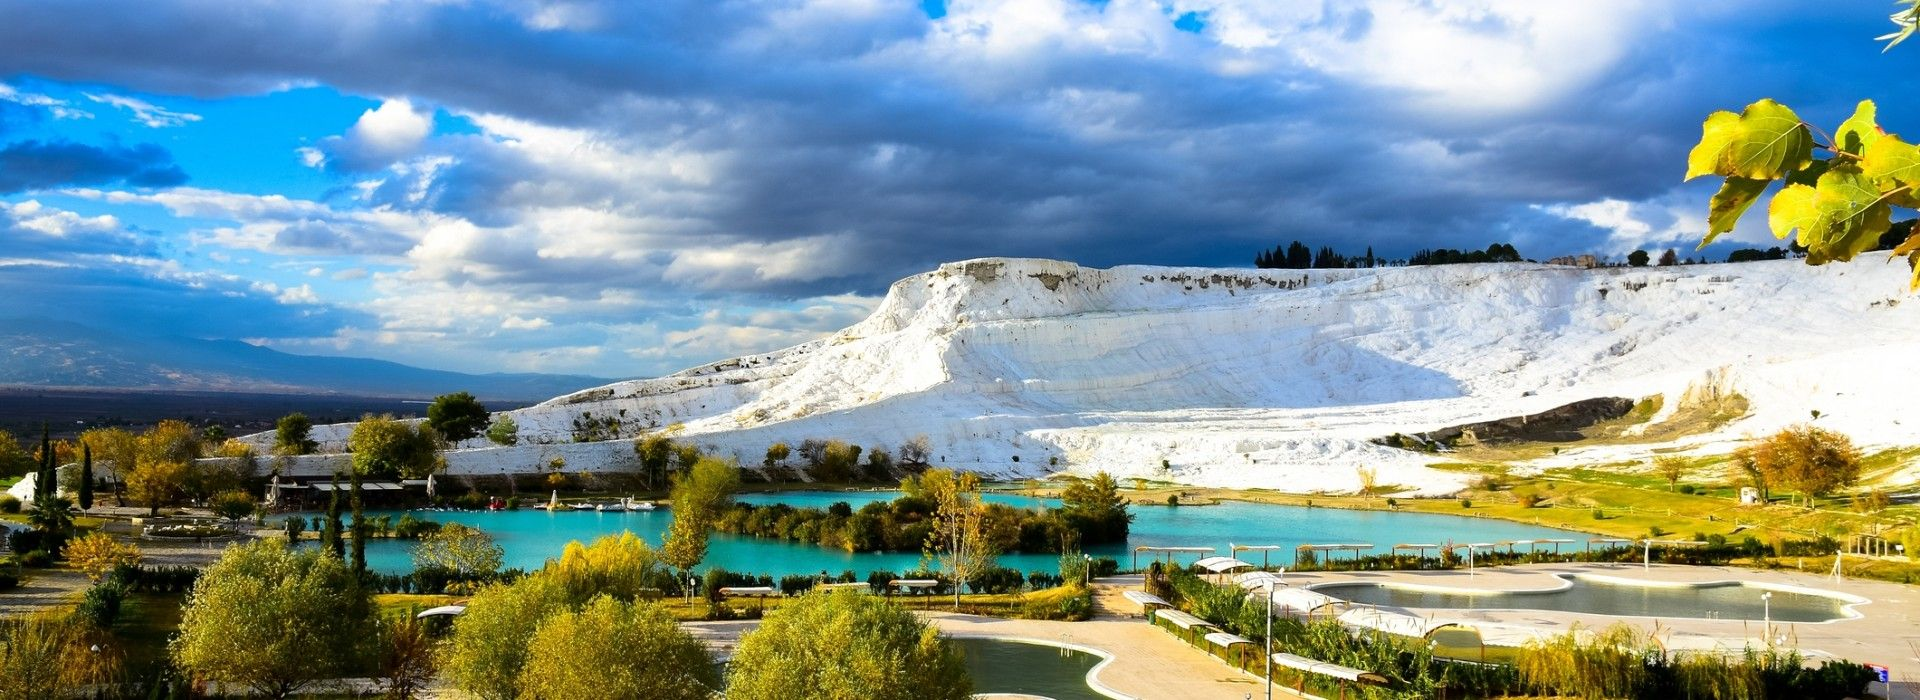 City sightseeing Tours in Cappadocia